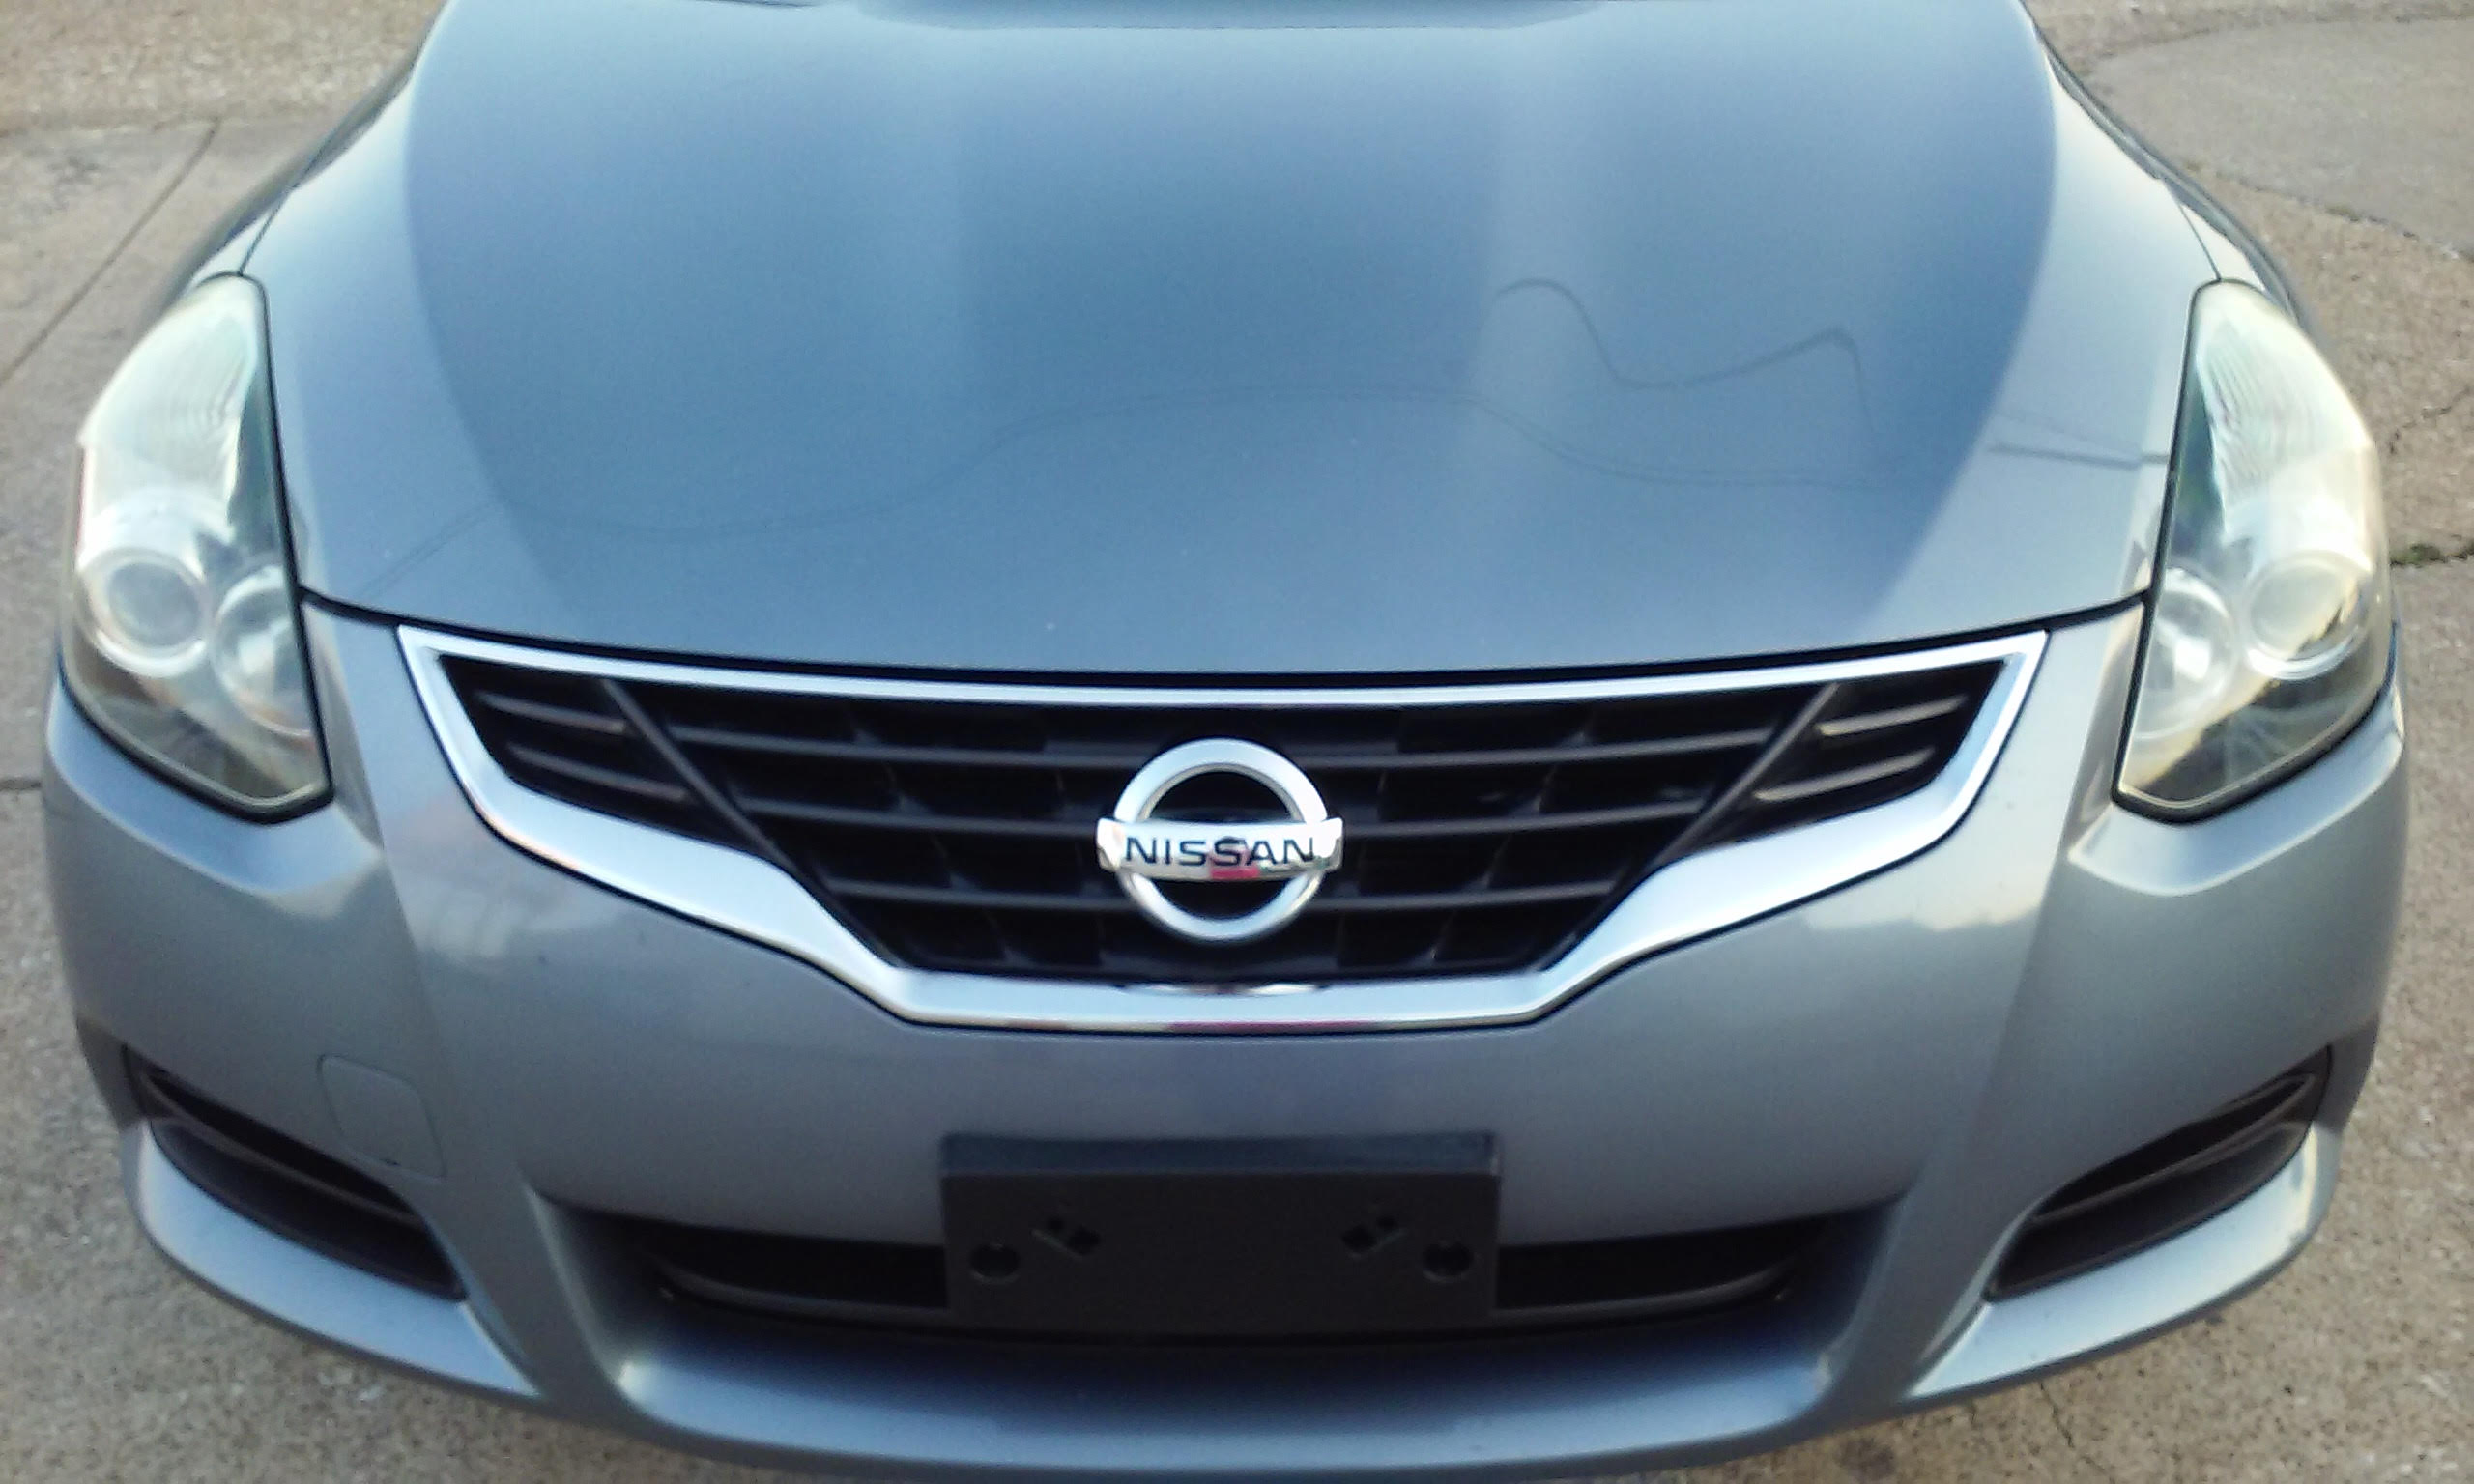 Nissan Altima 2.5 S >> SOLD 5/31/18 | 2011 NISSAN ALTIMA COUPE – ONLY $500 DOWN ...